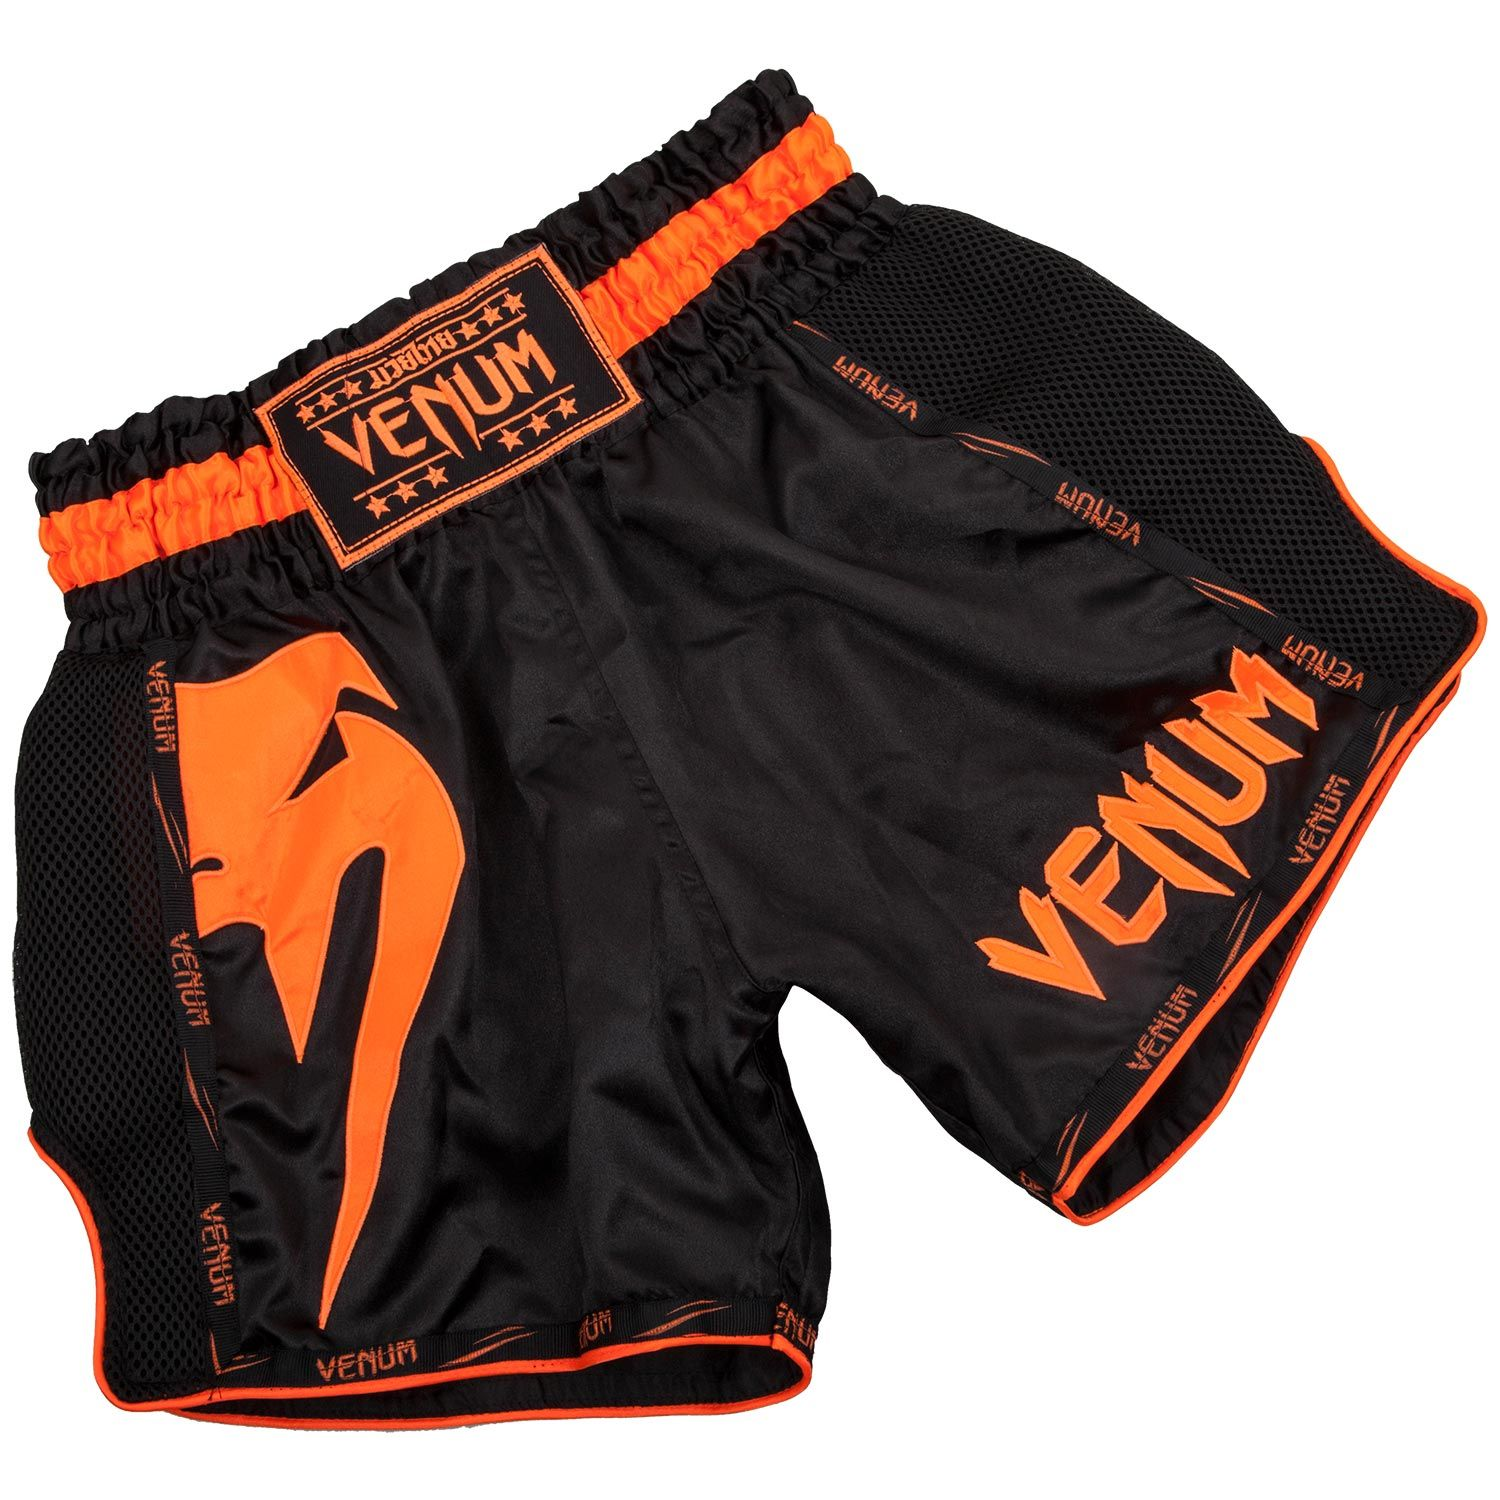 Venum Giant Muay Thai Short - Zwart/Neonoranje